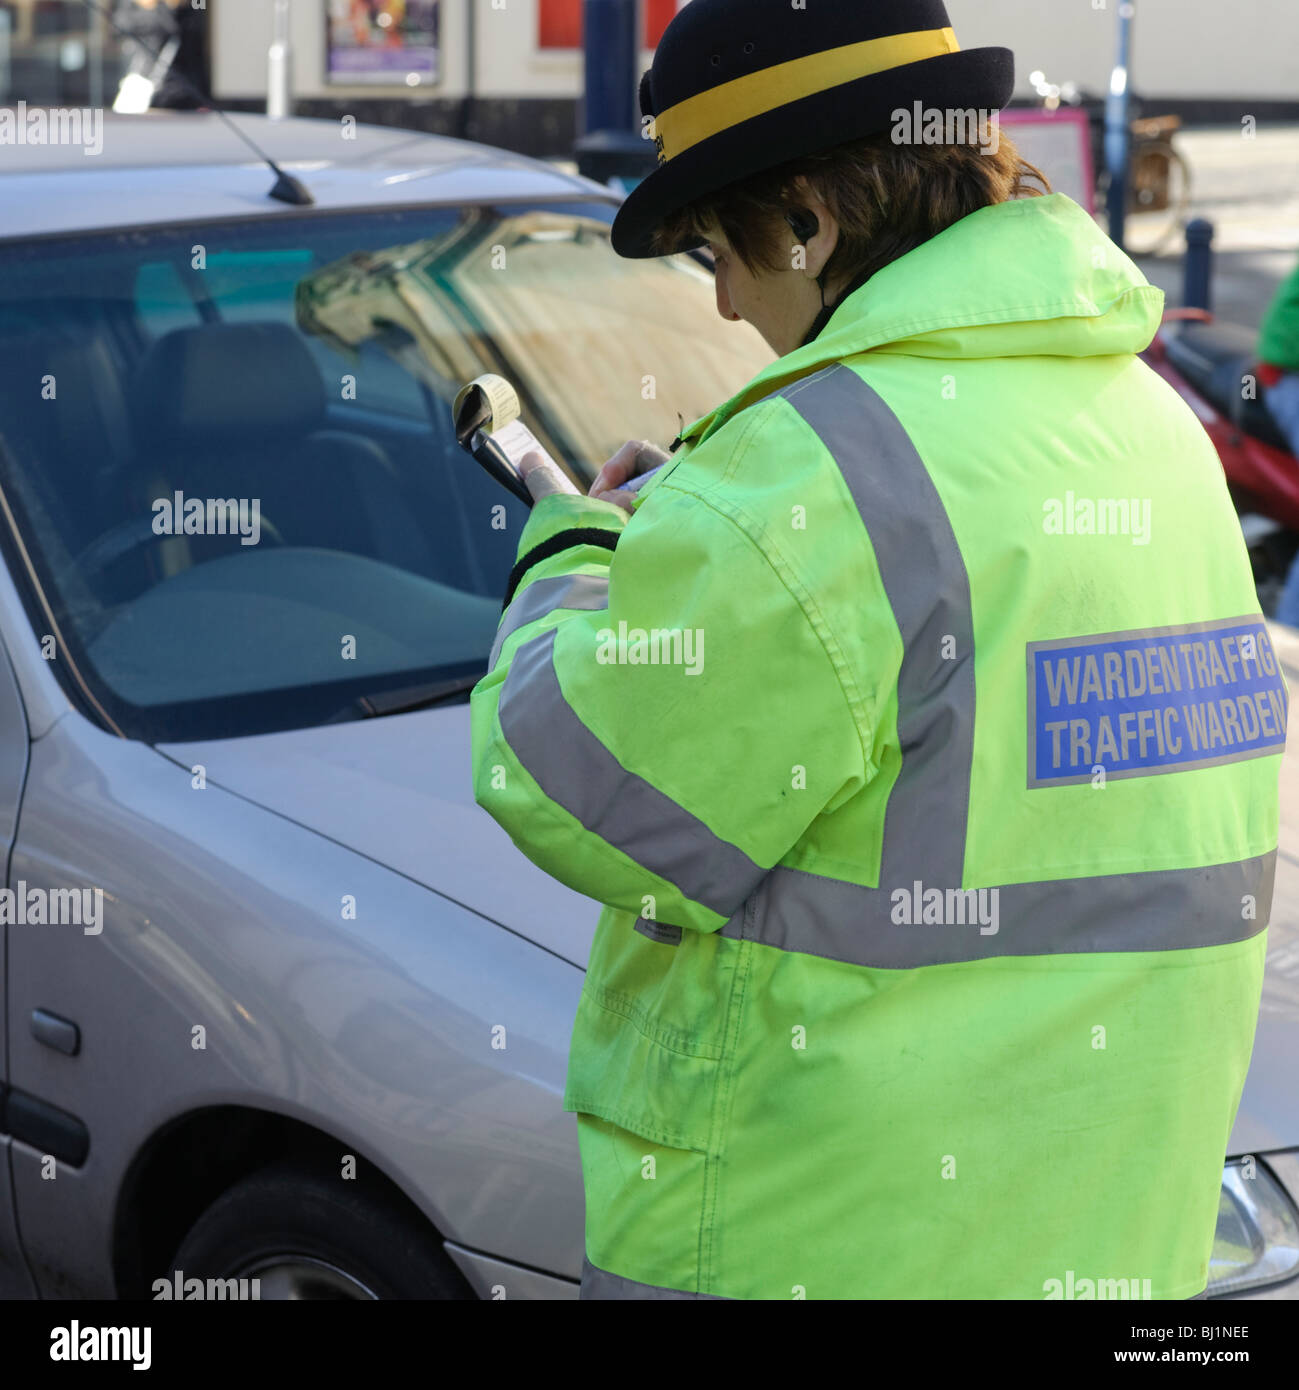 A female traffic warden writing or issuing a parking ticket, Aberystwyth Wales UK - Stock Image